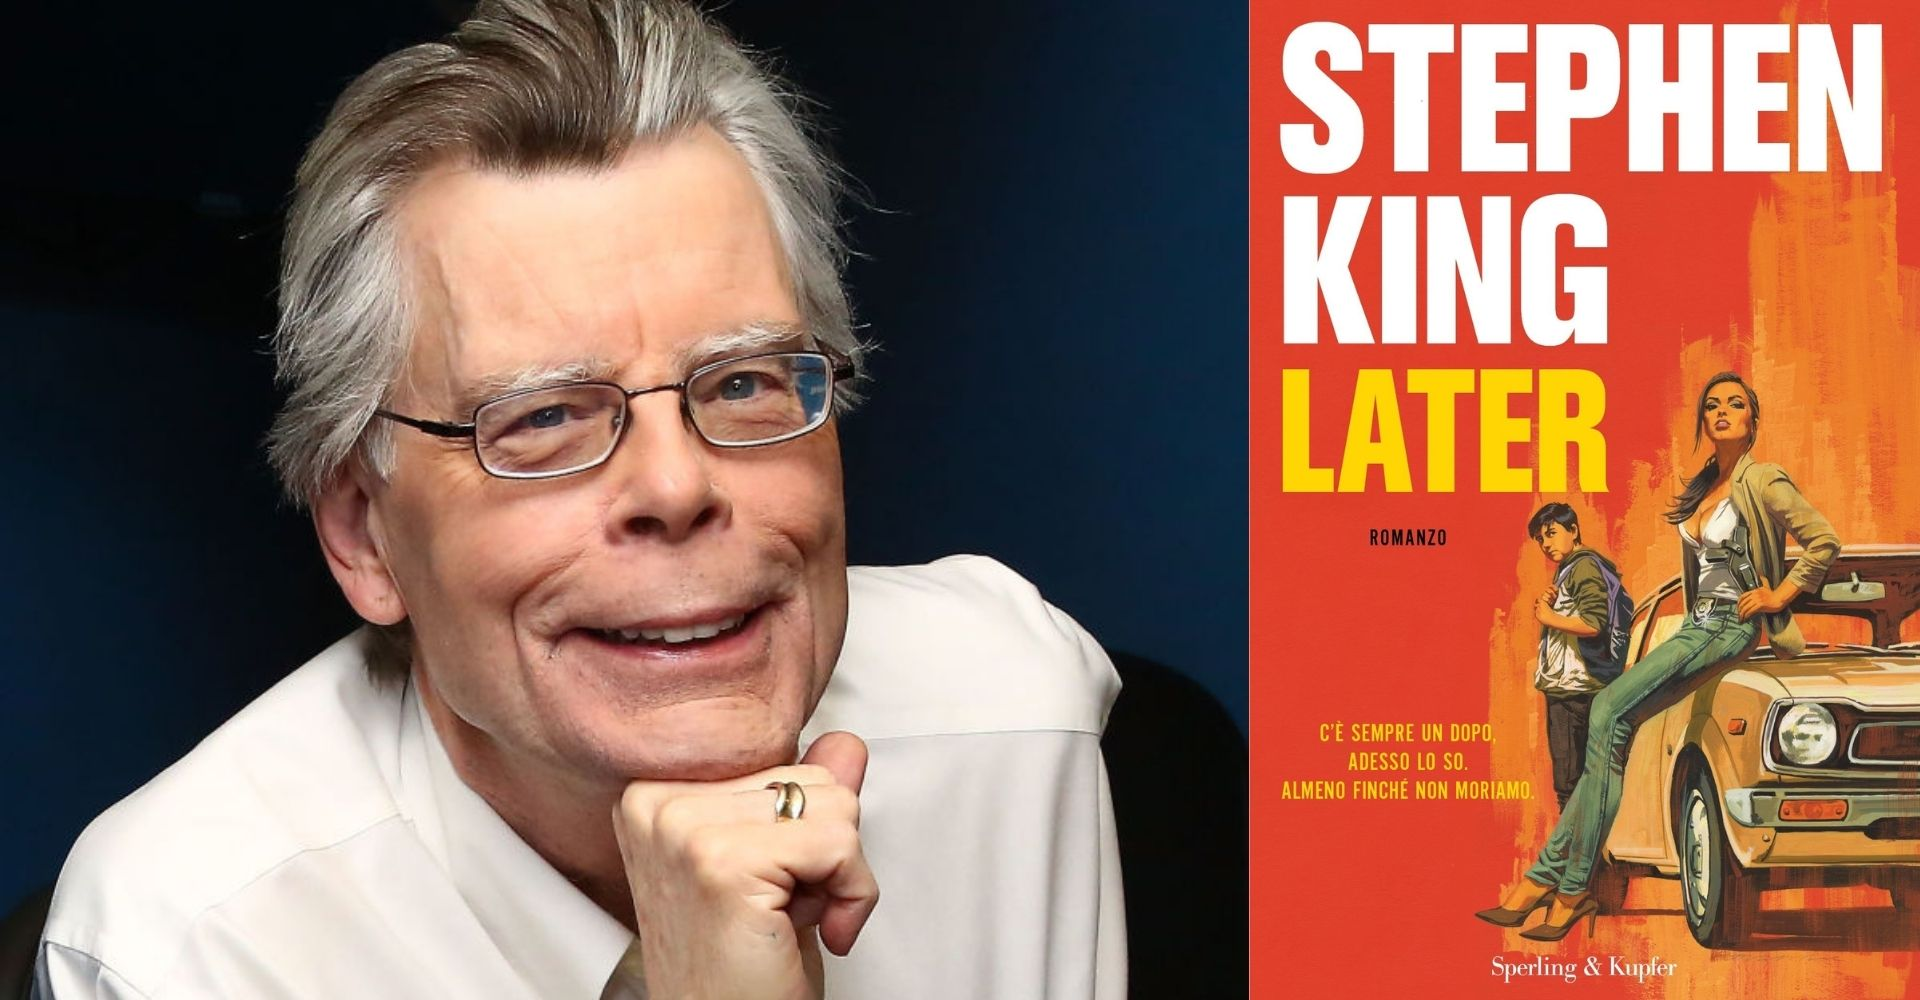 """Later"": il nuovo romanzo di Stephen King in contemporanea mondiale"